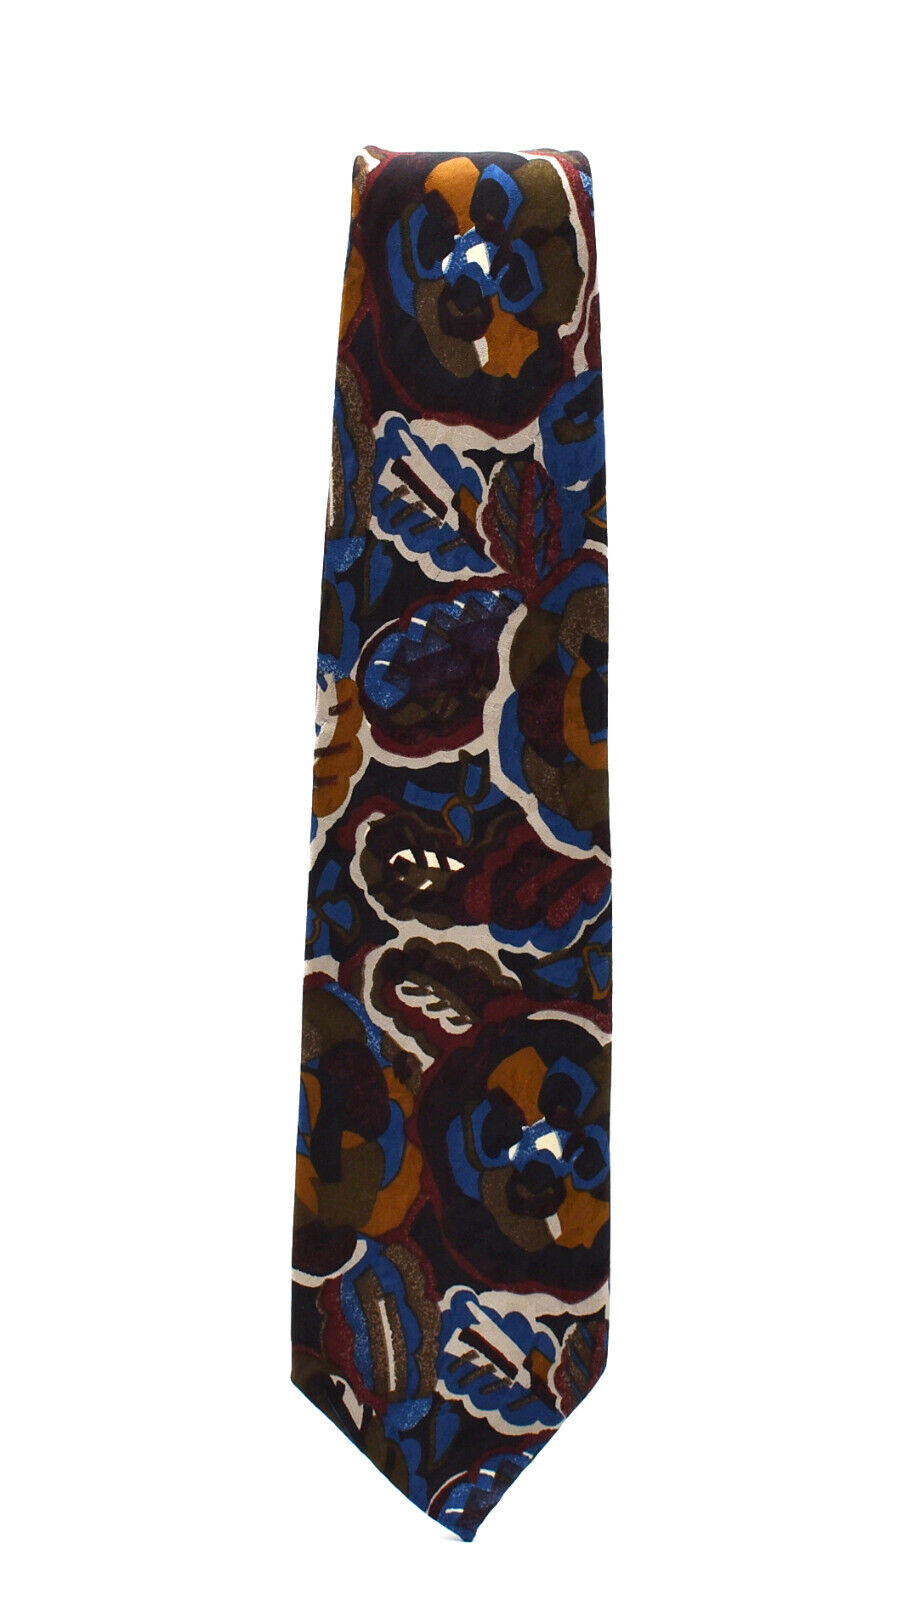 Hand made Very elegant-from France French Haute Couture HANAE MORI PARIS France Vintage Silk Tie Signed Hanae Mori Paris Pure Silk